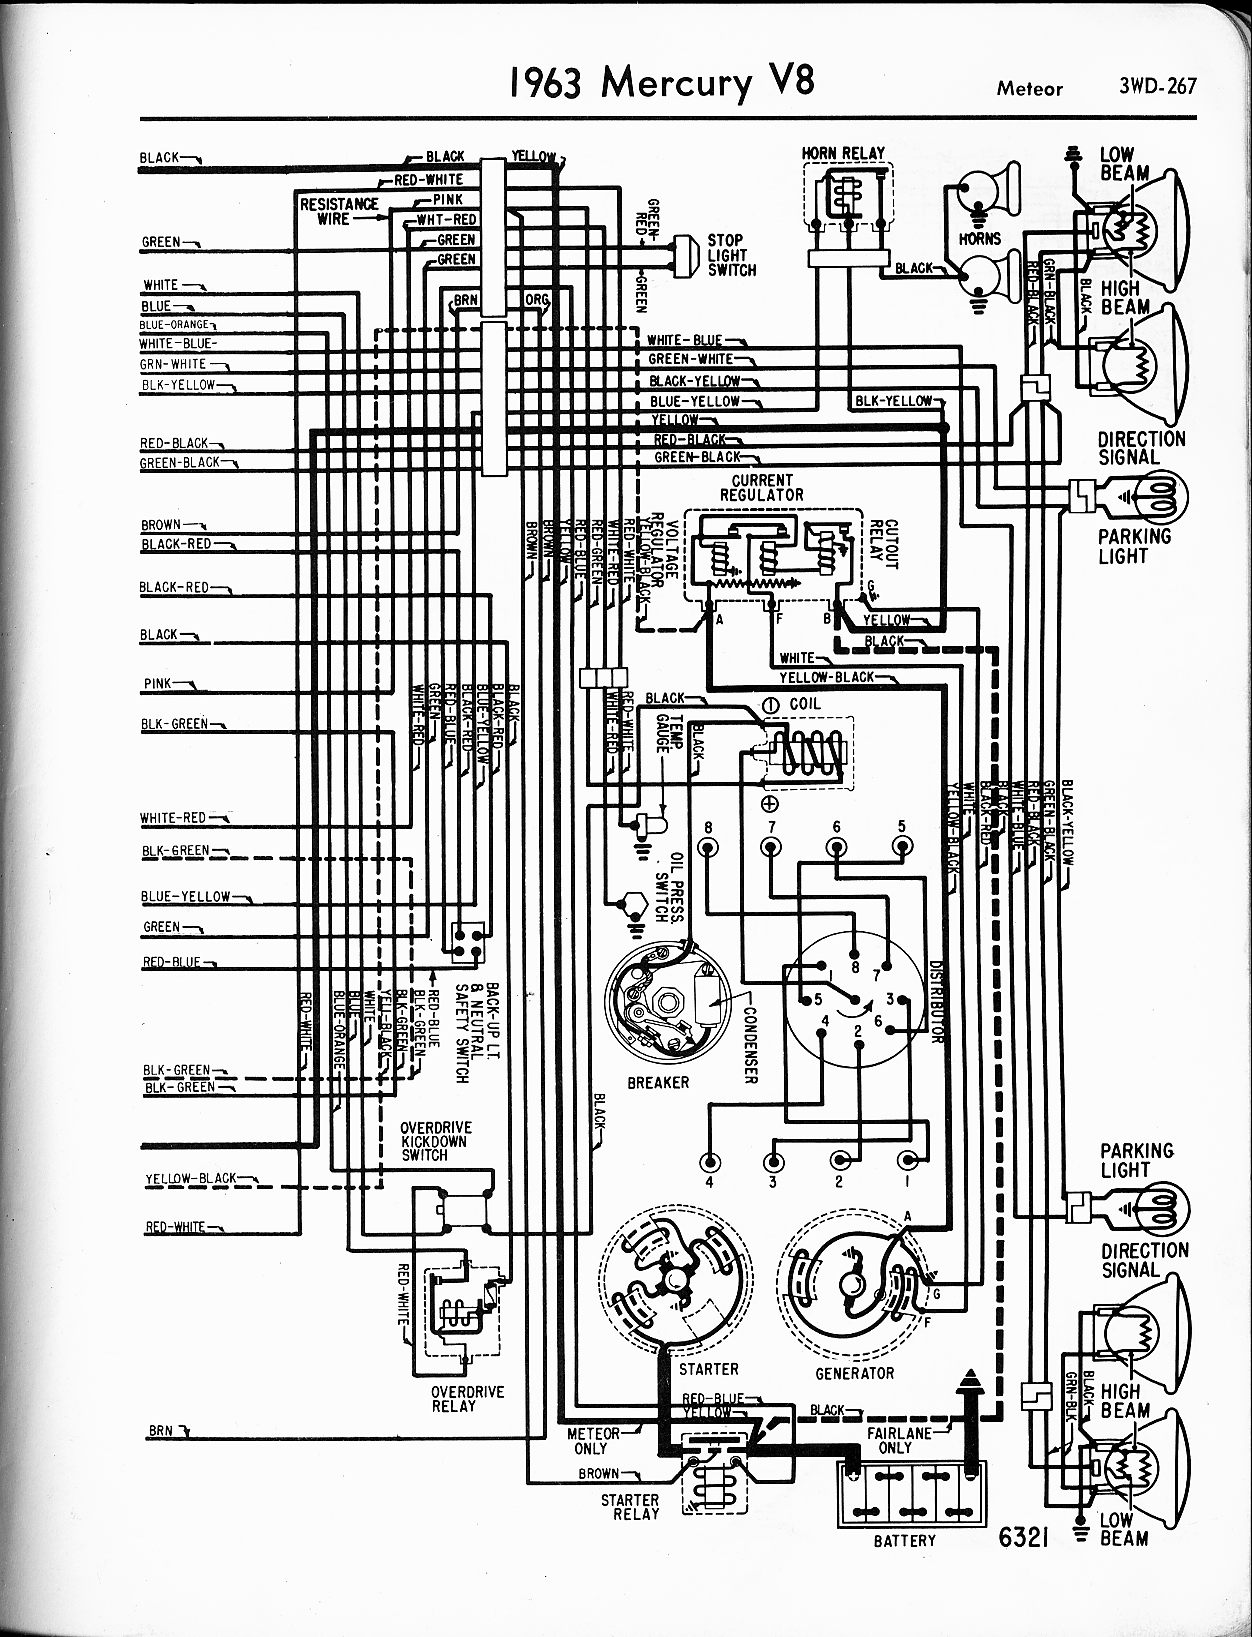 MWire5765 267 mercury wiring diagrams the old car manual project 1963 mercury comet wiring diagram at fashall.co